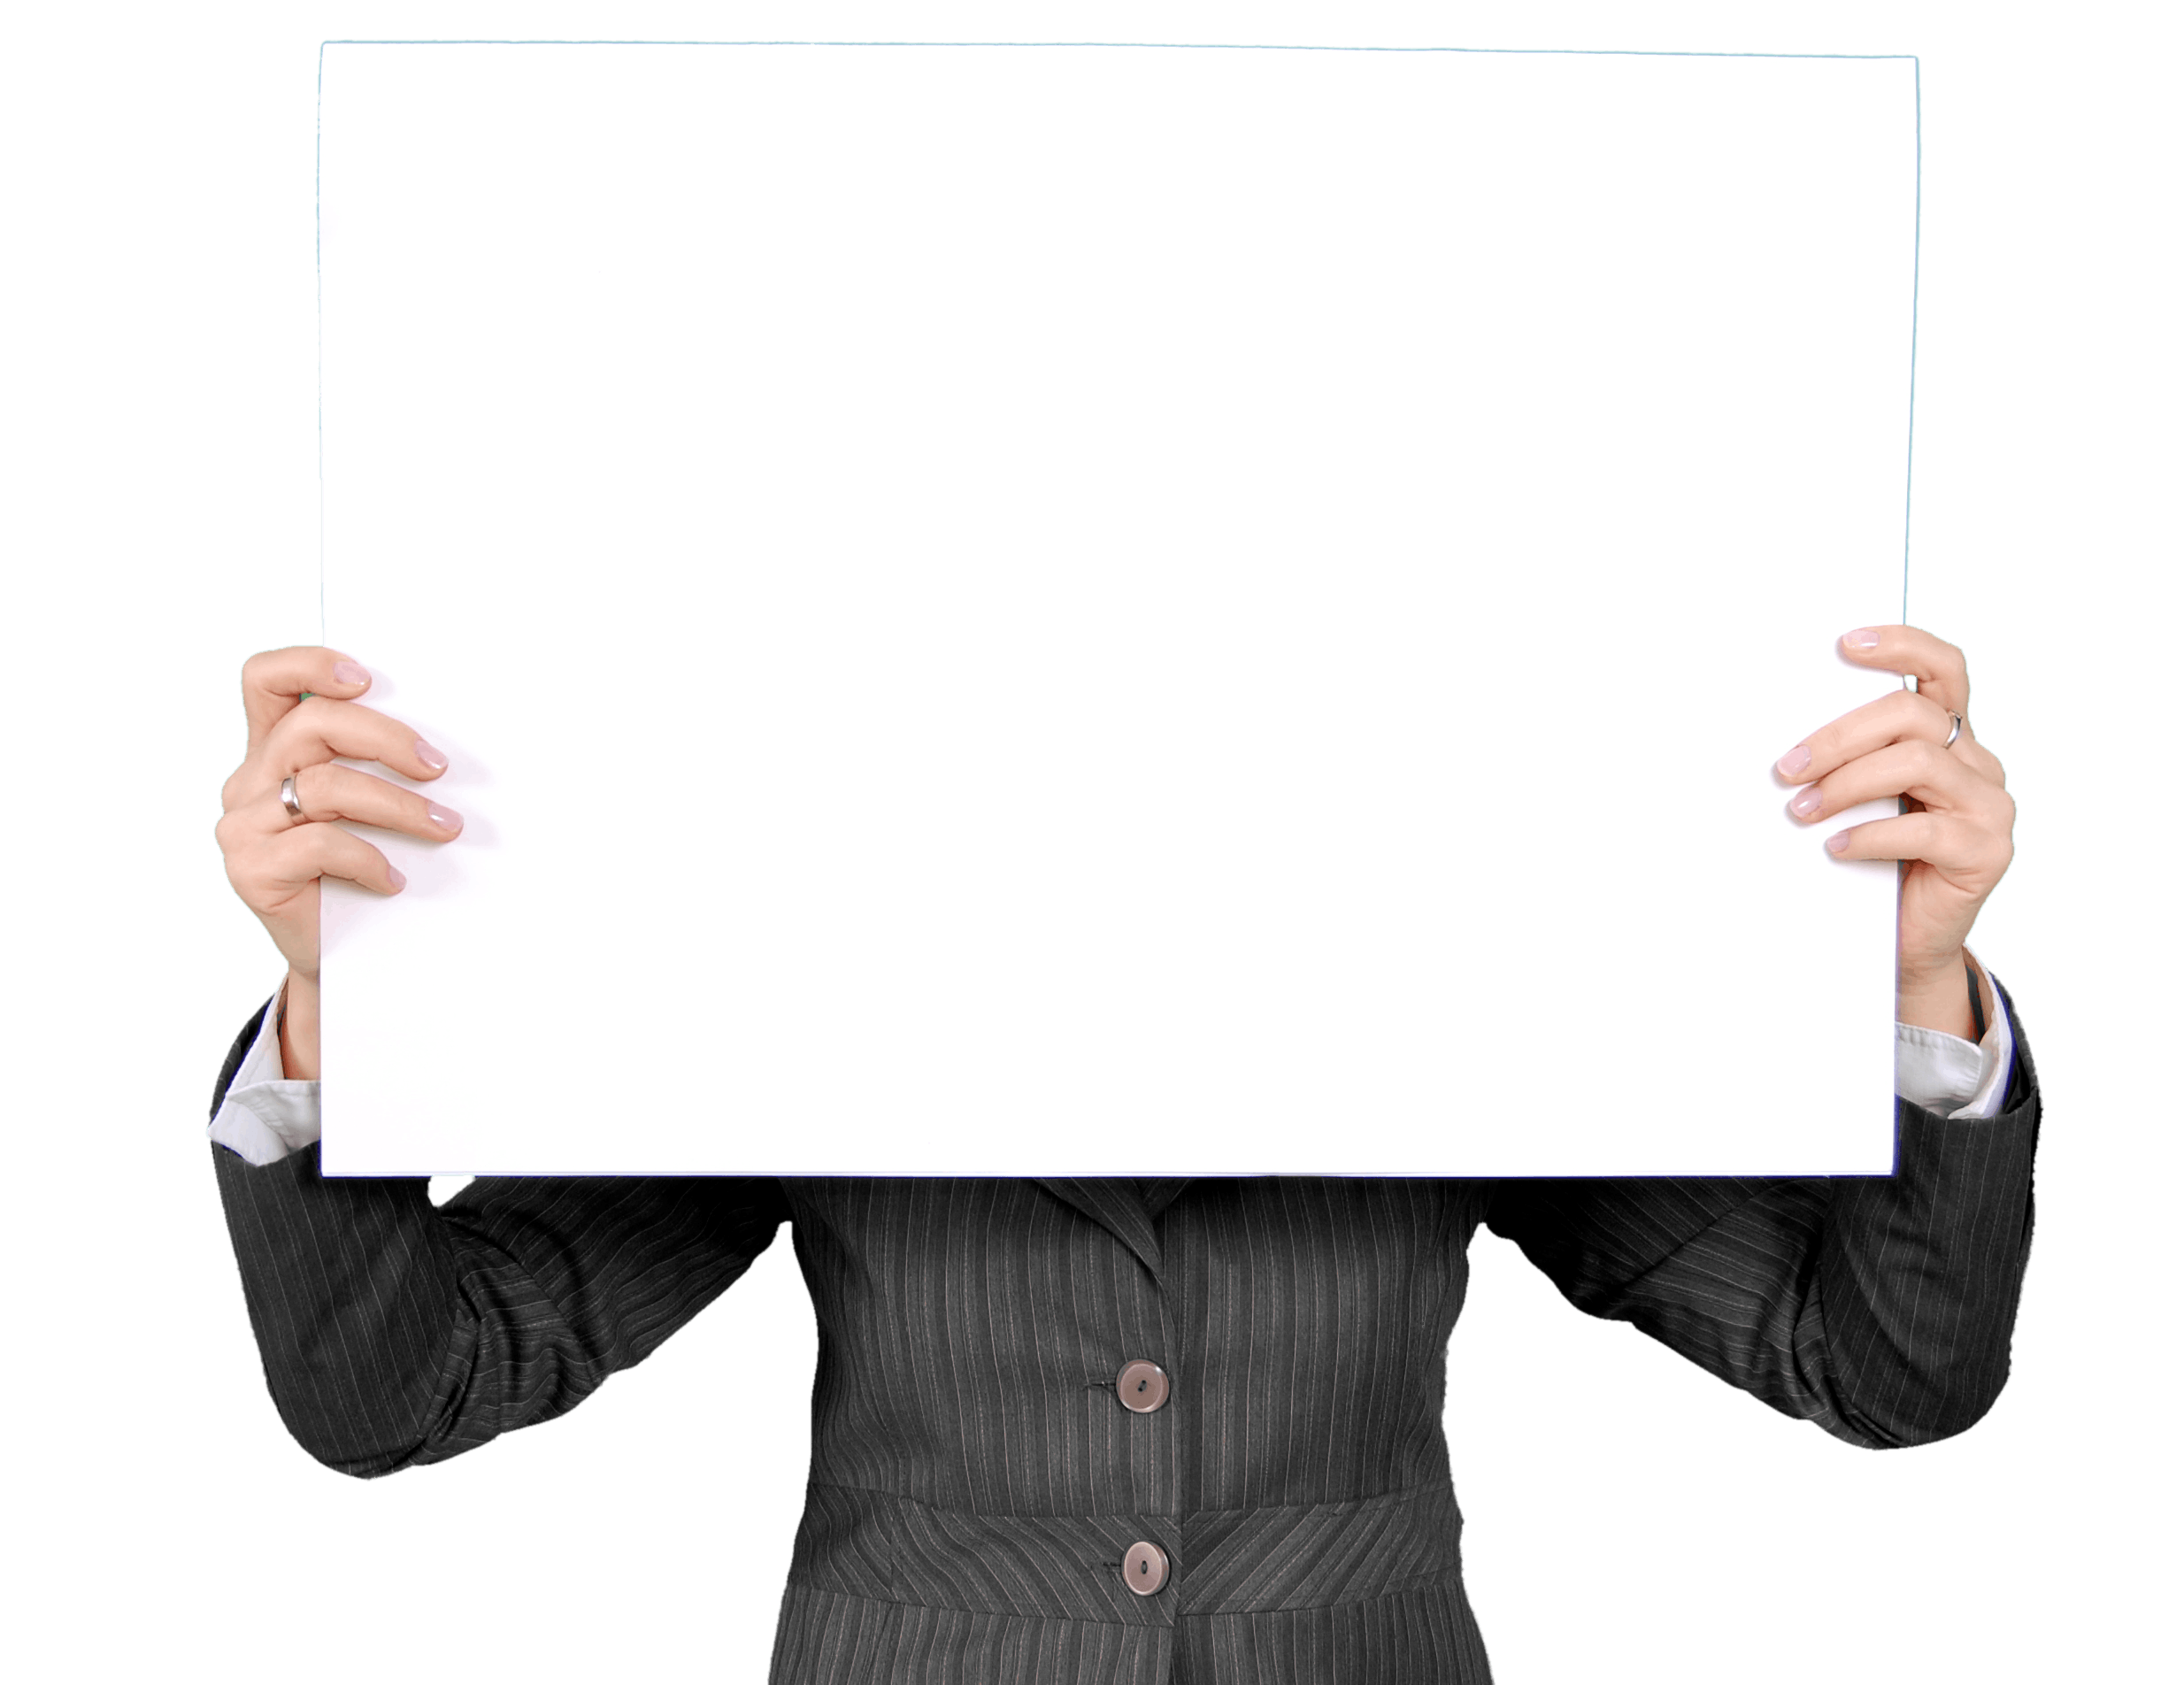 Person in a Black Coat Holding White Rectangular Board